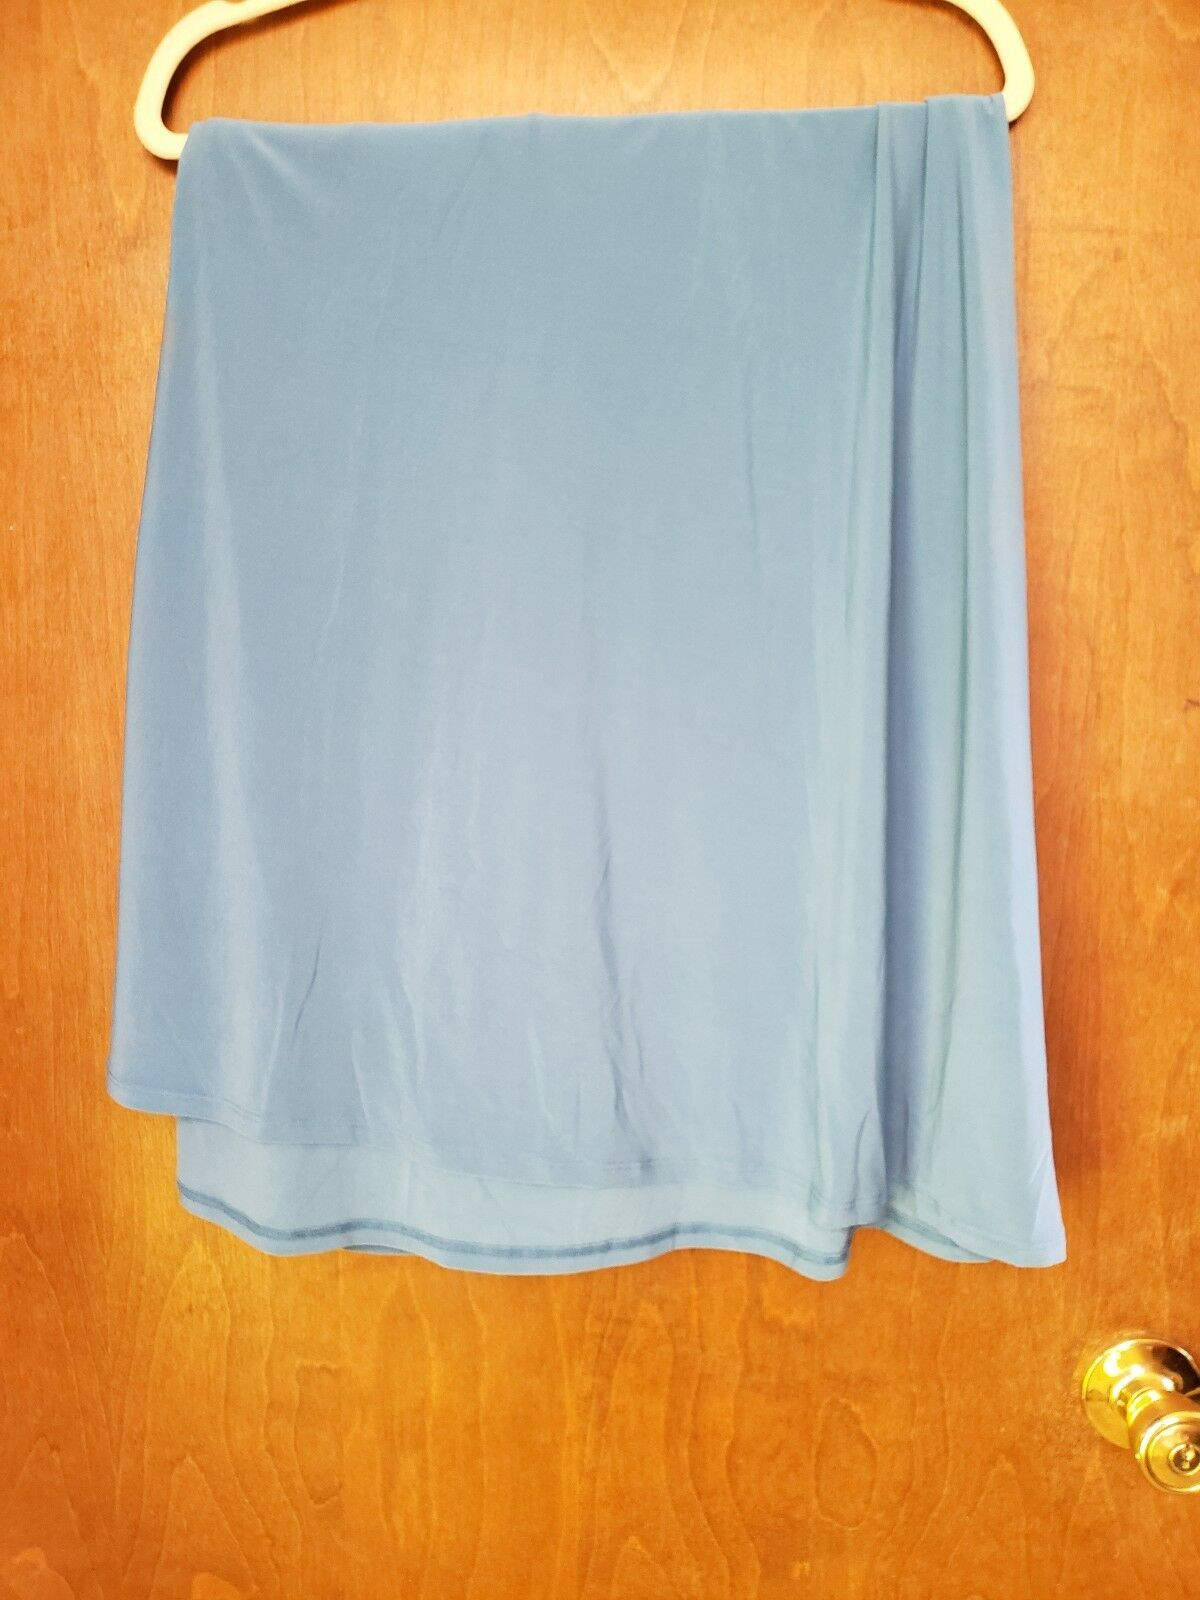 NEW - LuLaRoe Maxi Skirt - 2XL, Solid Light bluee -